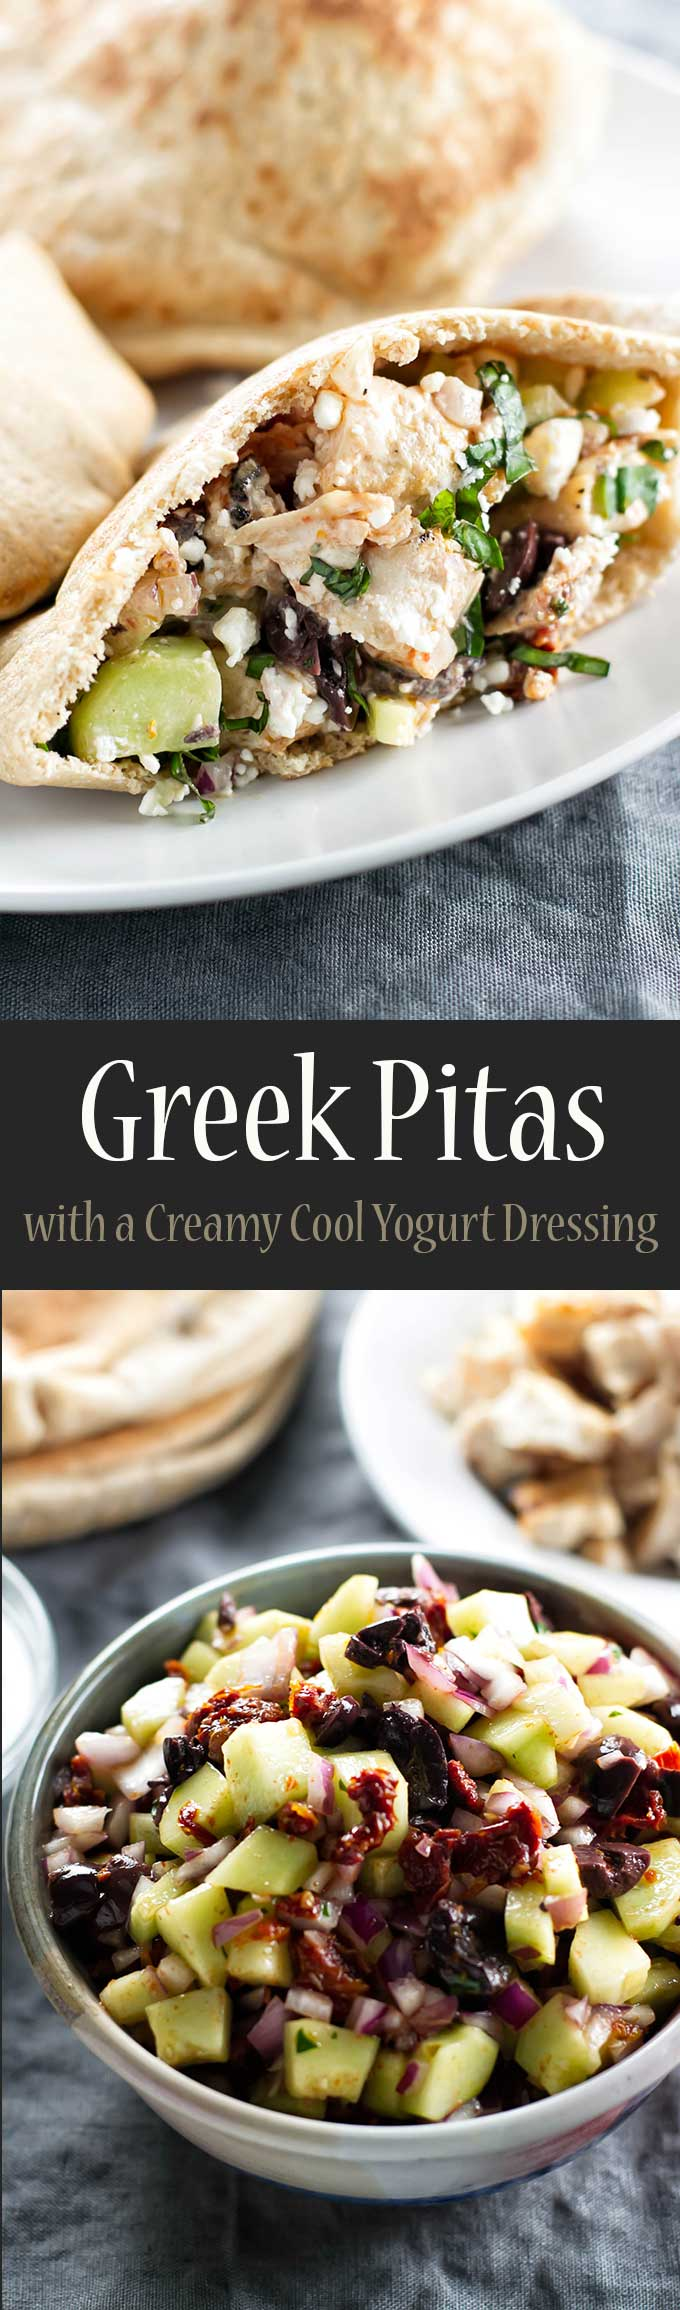 Greek pitas with chicken, sundried tomatoes, olives, and creamy cool yogurt dressing | girlgonegourmet.com